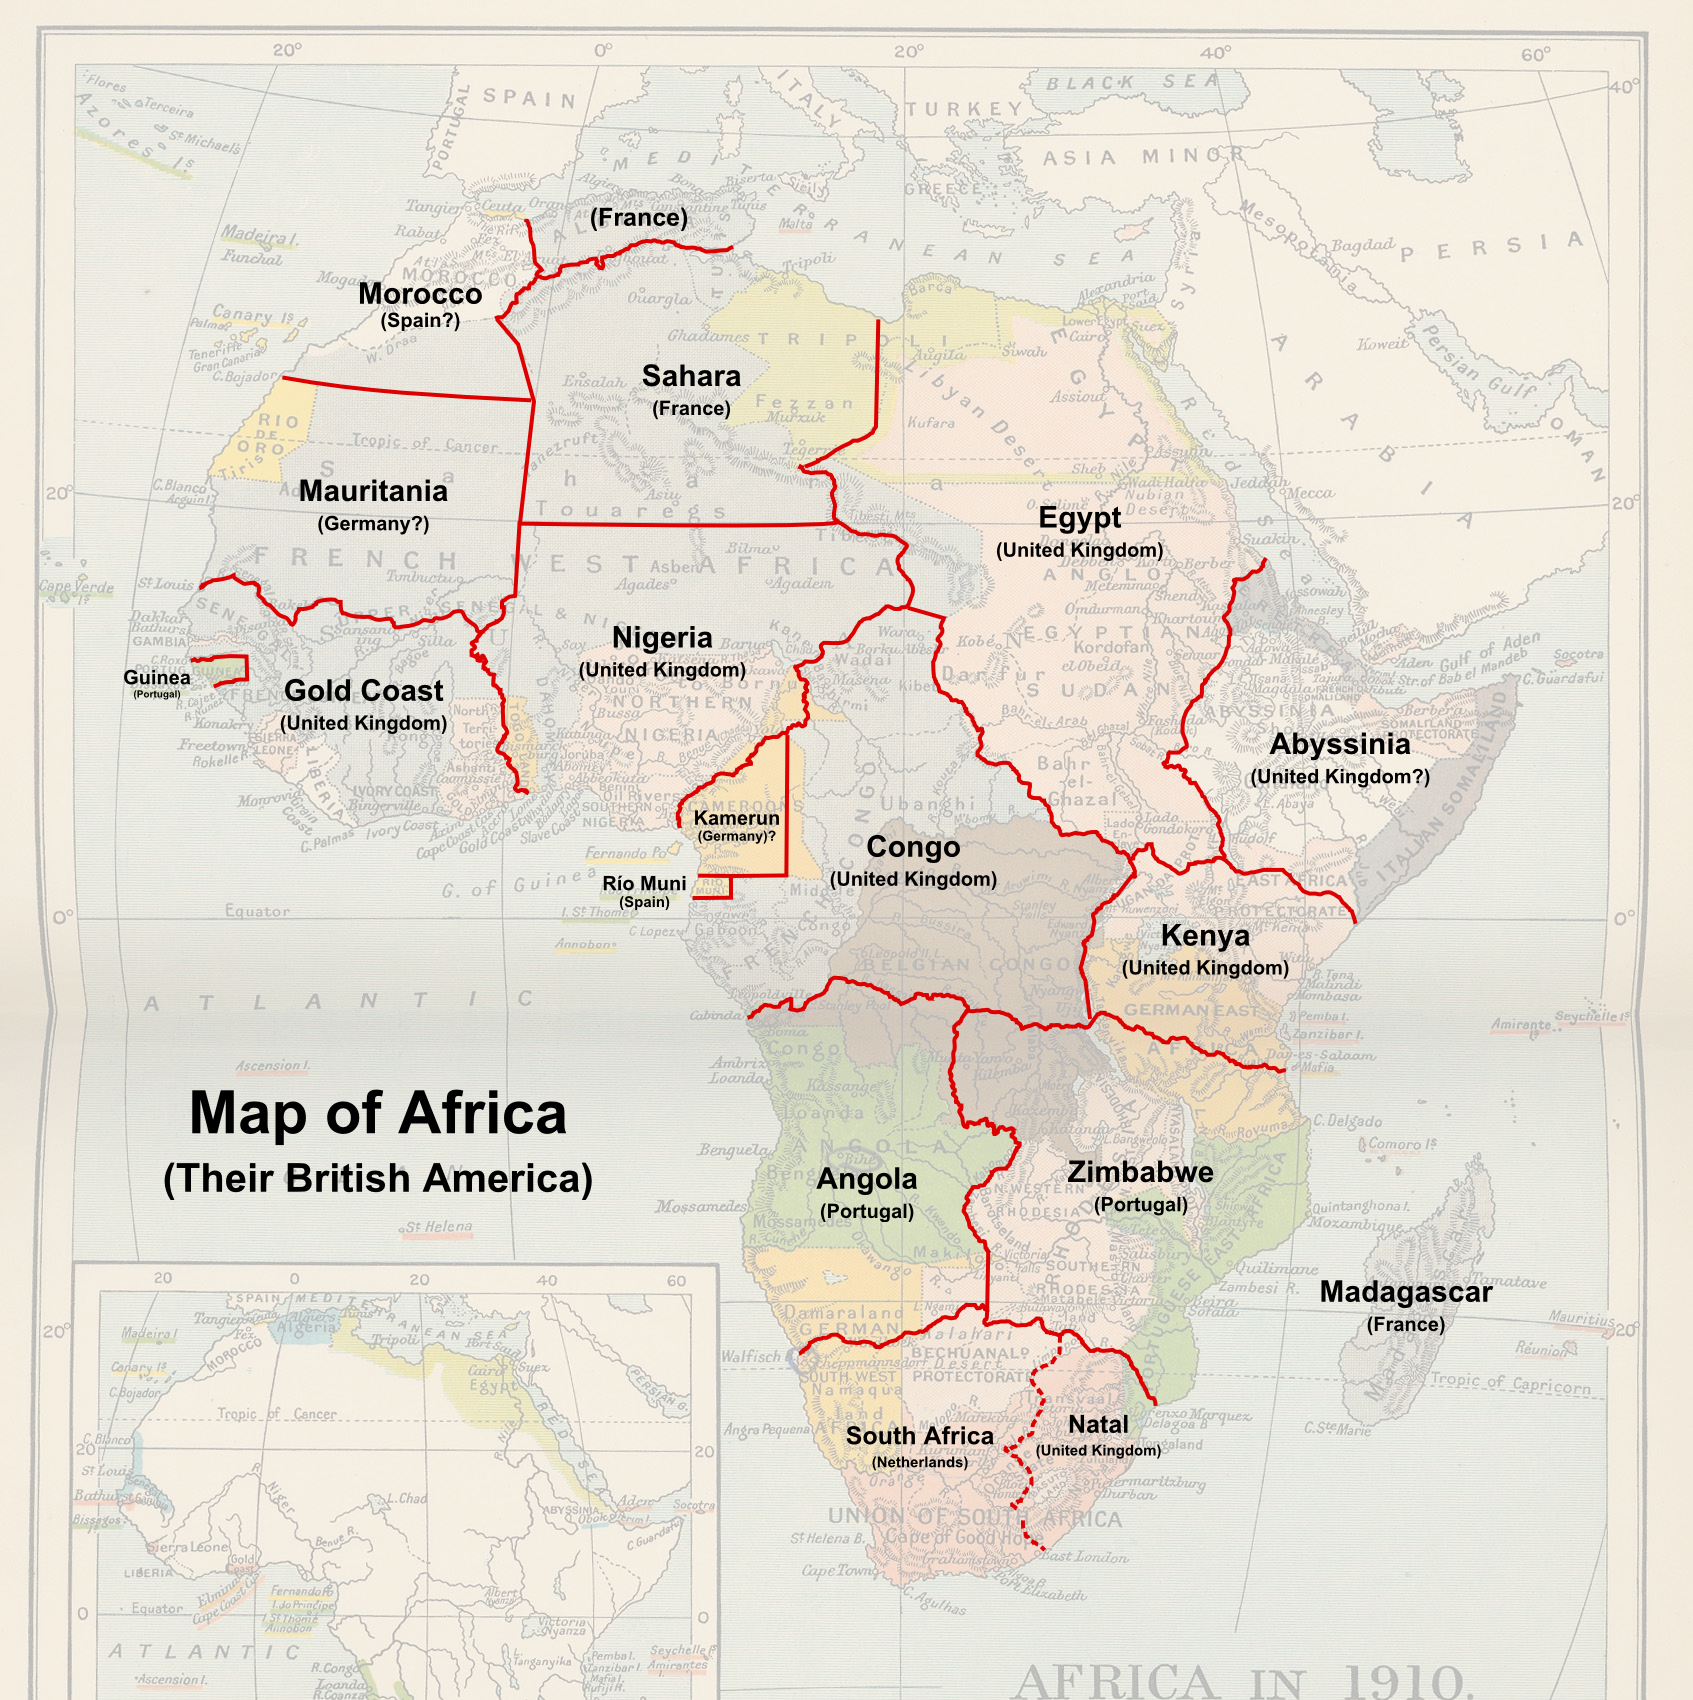 Map of Africa (Their British America).png